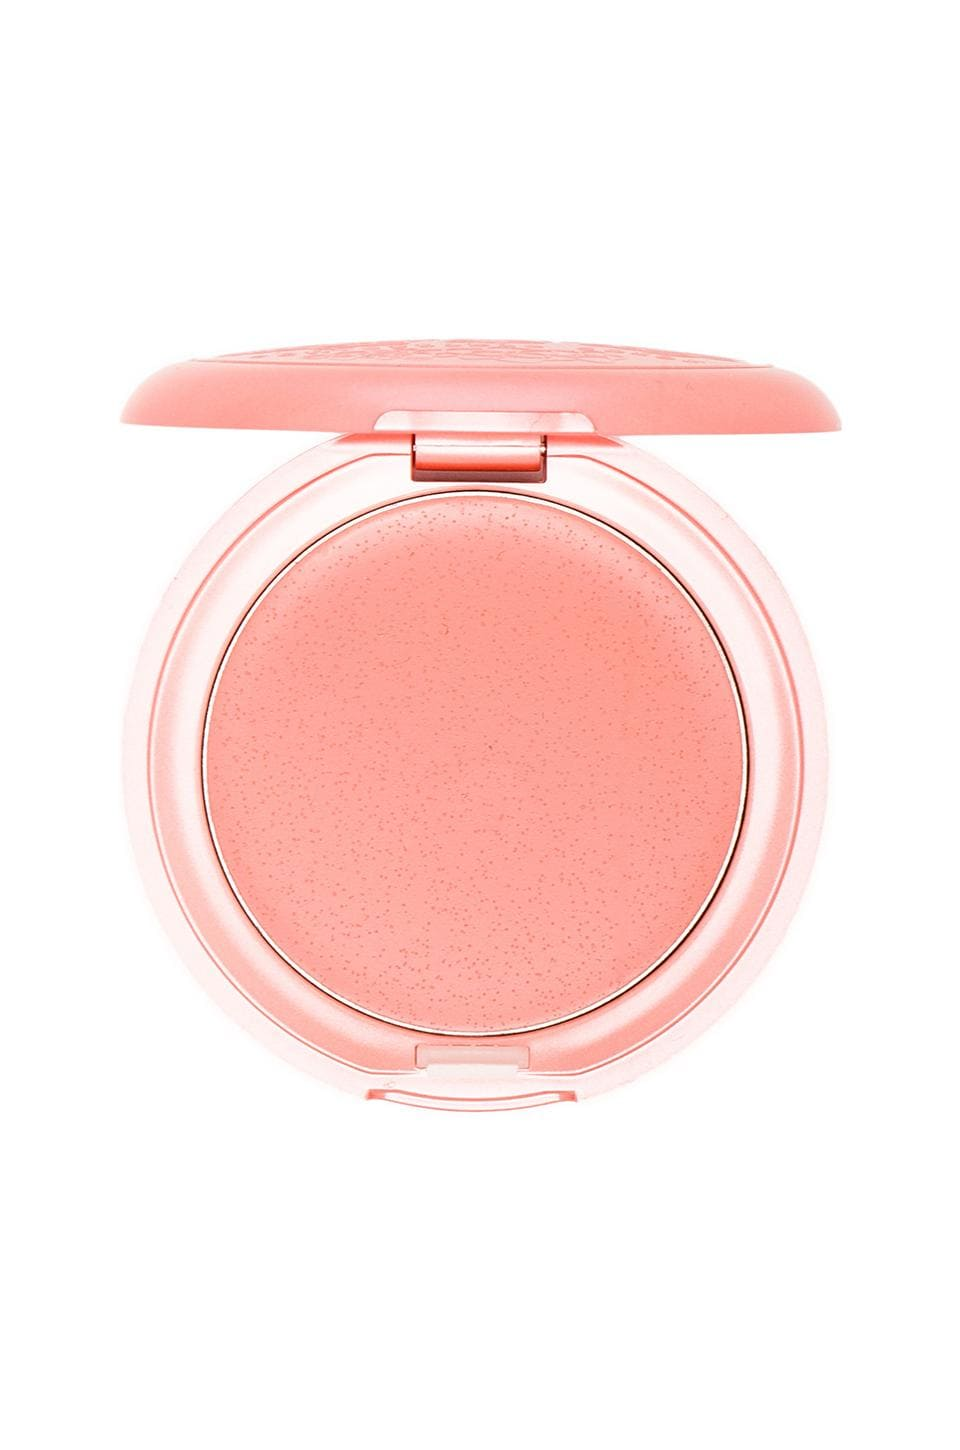 Stila Convertible Color in Gerbera- Rosy Peachy Pink